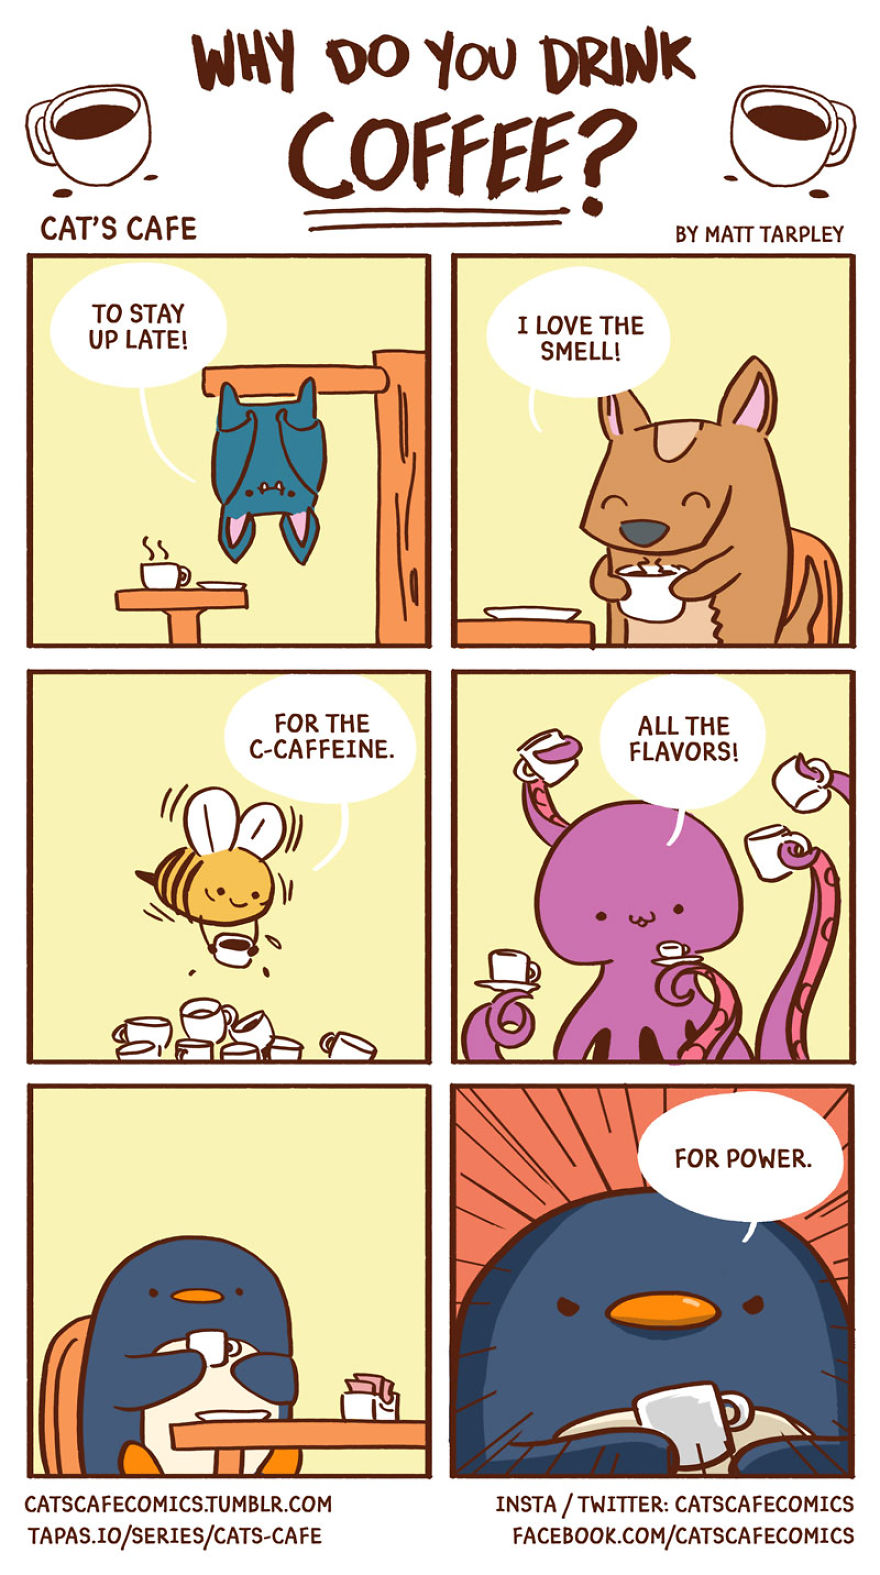 47 Wholesome Cat S Cafe Comics That Will Brighten Your Day Demilked